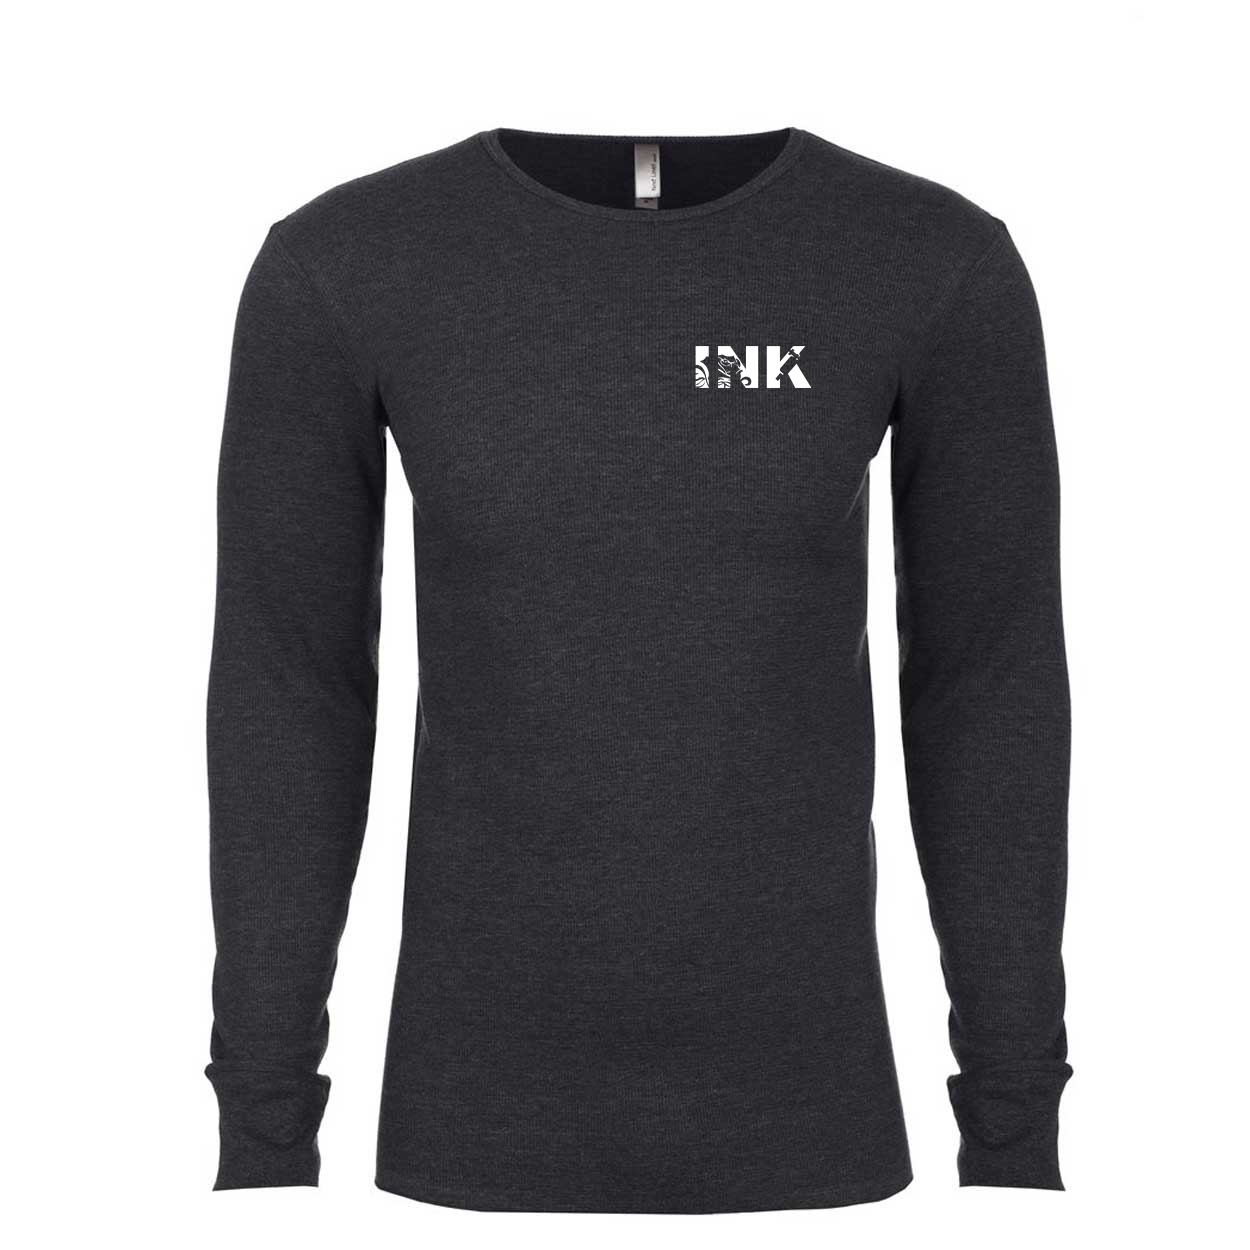 Ink Tattoo Logo Long Sleeve Thermal Shirt Heather Charcoal (White Logo)